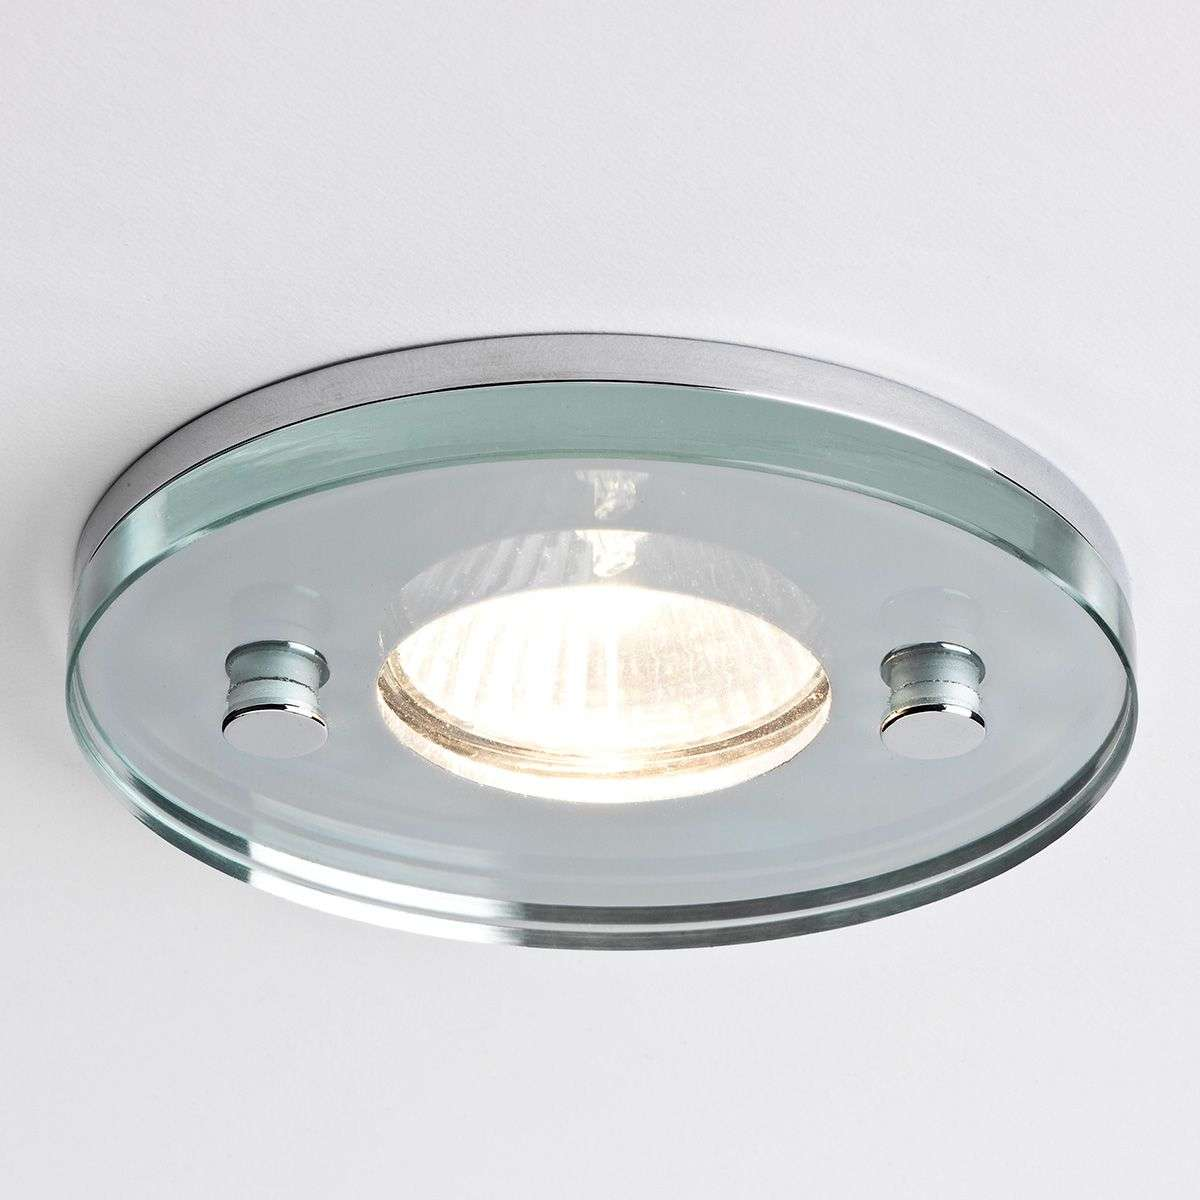 Ice Round Built-In Ceiling Light Attractive-1020106-32